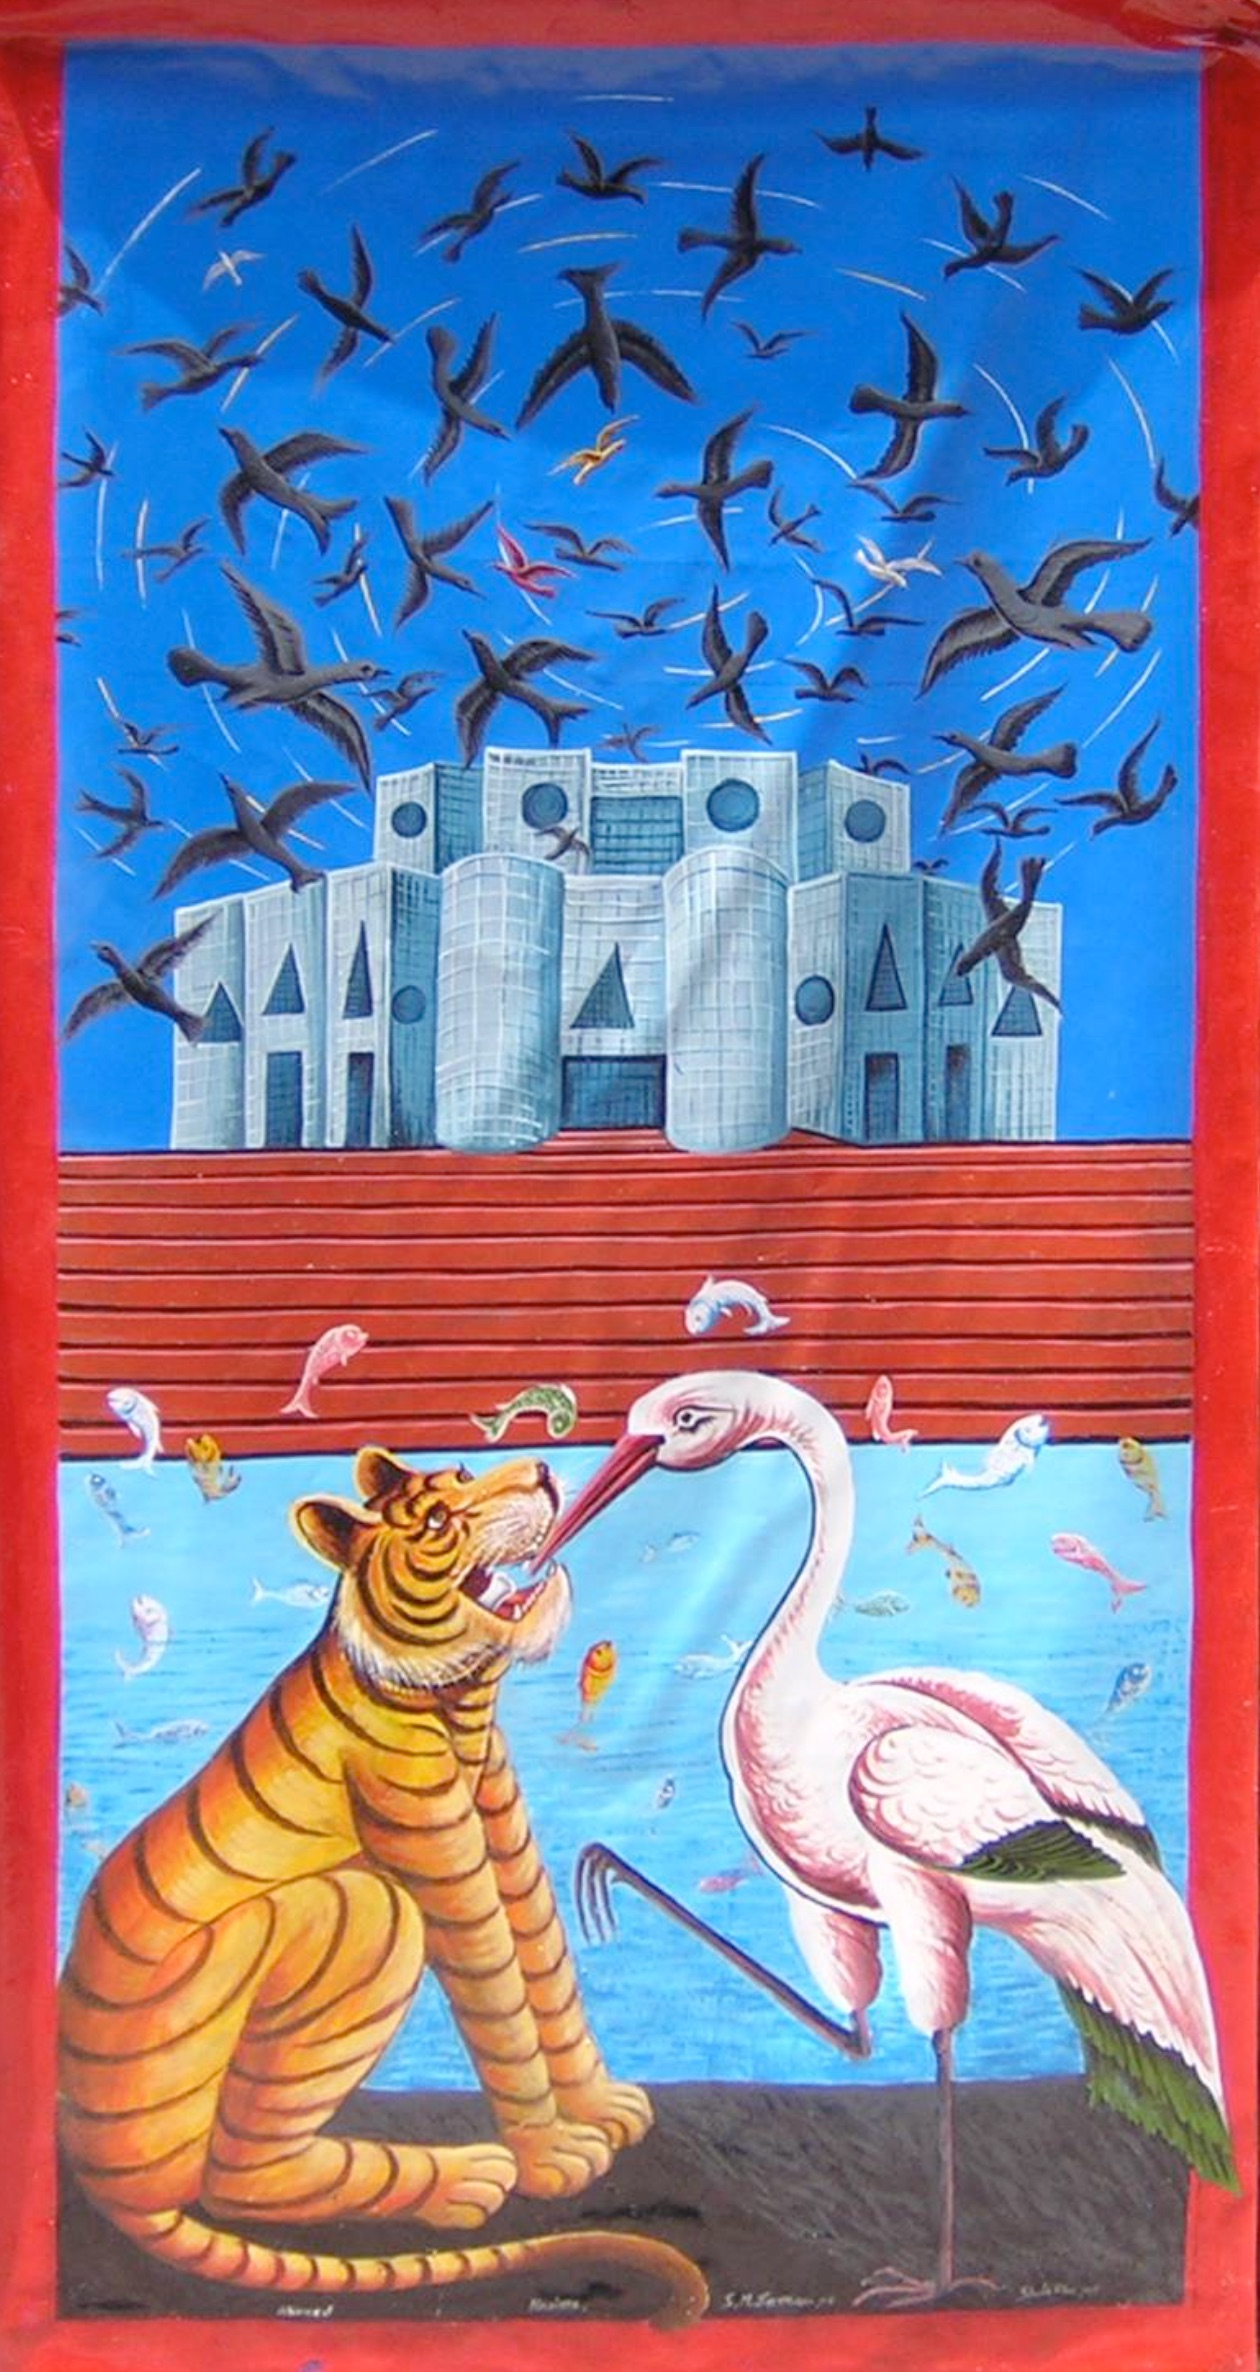 A Millionaire Crow   This painting is a blend of political satire and folk tales. Painted in rikshaw-painting style it shows a flock of crows flying in circles above the roofs of the National Assembly building. This ominous incident suggests the mayhem that currently is ruling over the realpolitik. In the painting, there is a brisk business of fisheries going on in full swing on the lakes of the assembly premise. In the bank of the lake, there is the famous display of deception being performed by the two characters (i.e. the tiger and the crane) of a famous folk tale. The tale reminds us of the deceits of the disdainful political leaders.